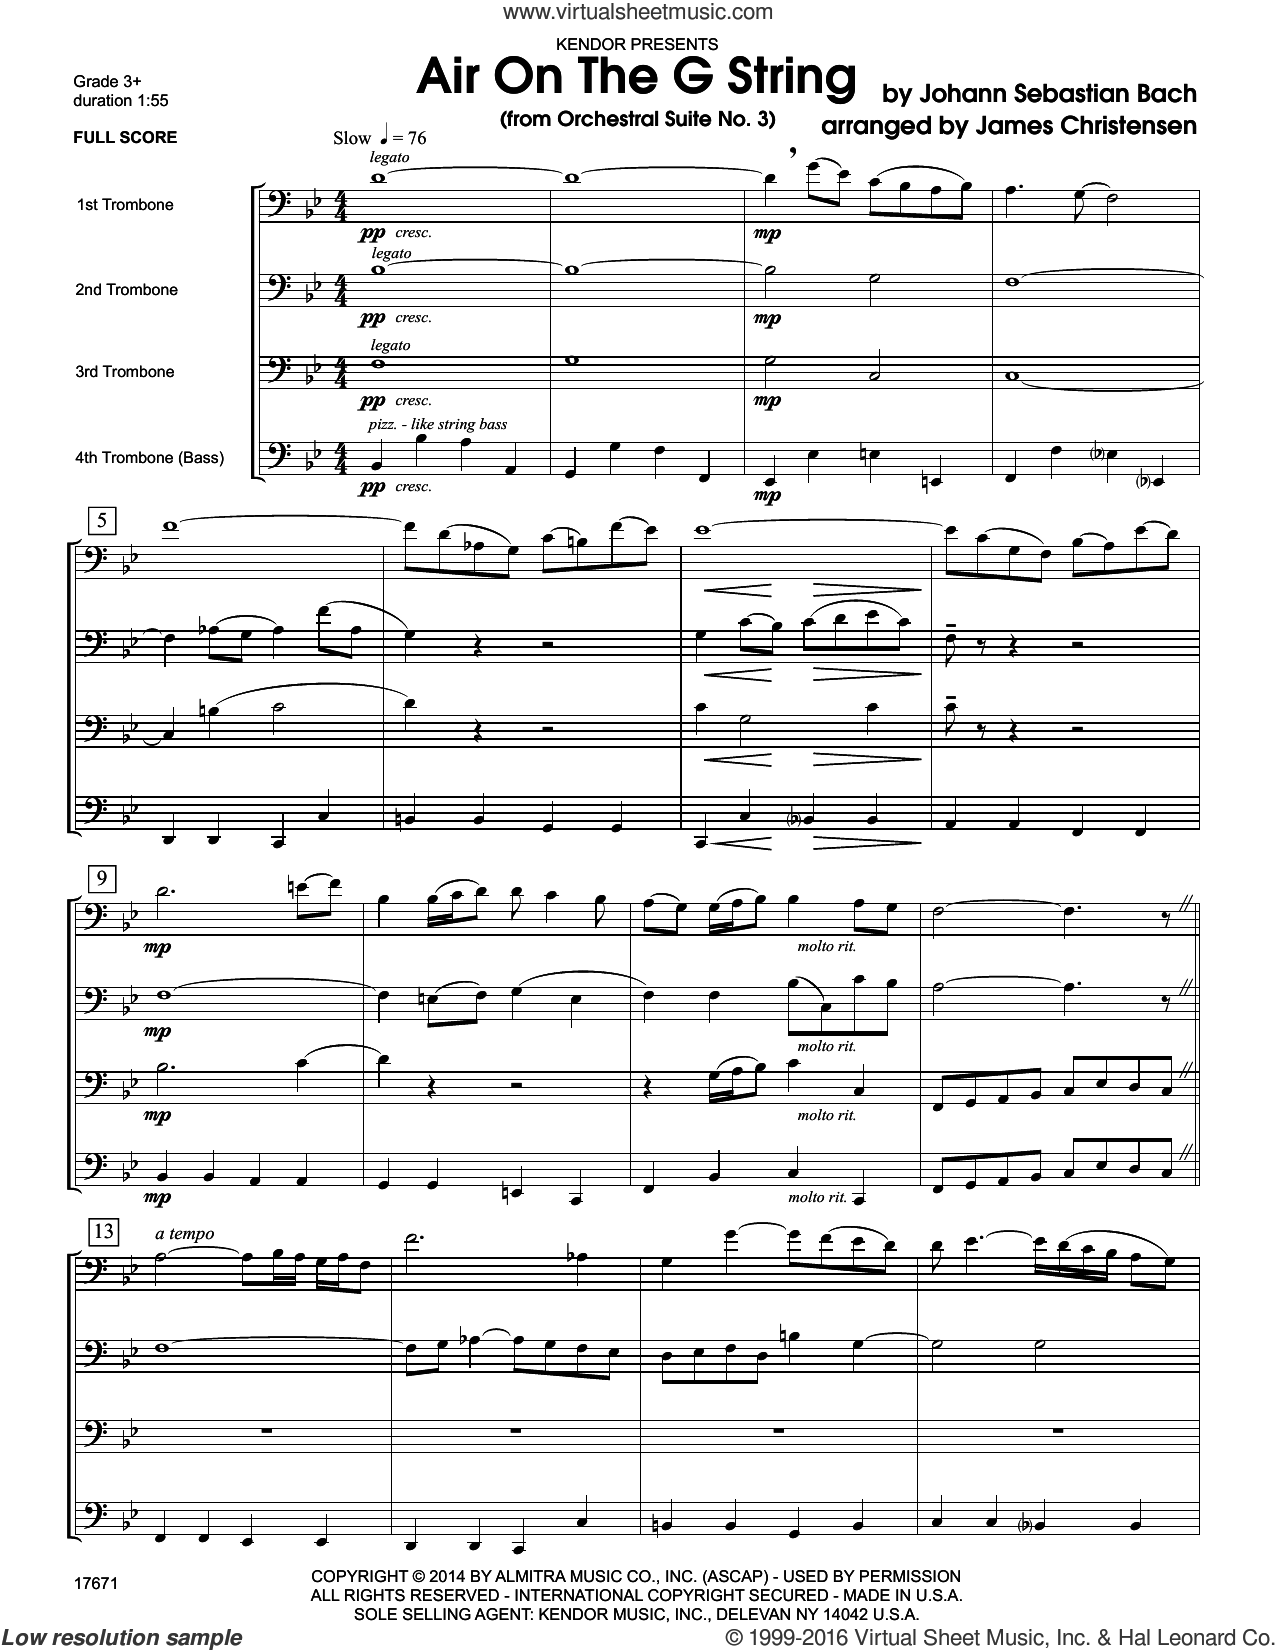 Air On The G String (from Orchestral Suite No. 3) (COMPLETE) sheet music for four trombones by Johann Sebastian Bach